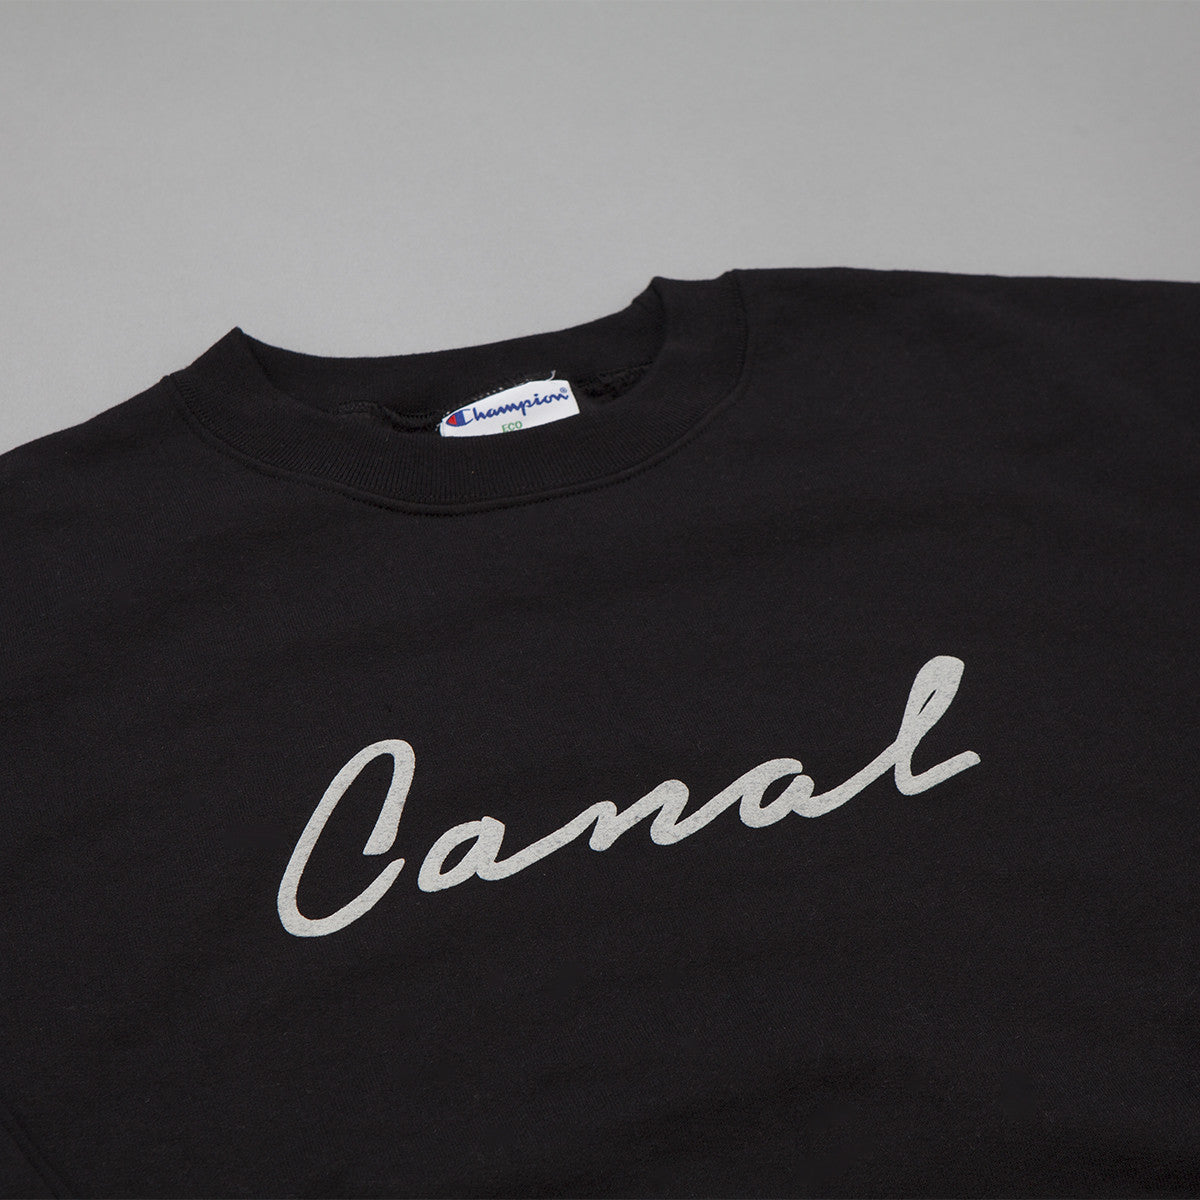 Canal New York Signature Script Crewneck Sweatshirt - Black